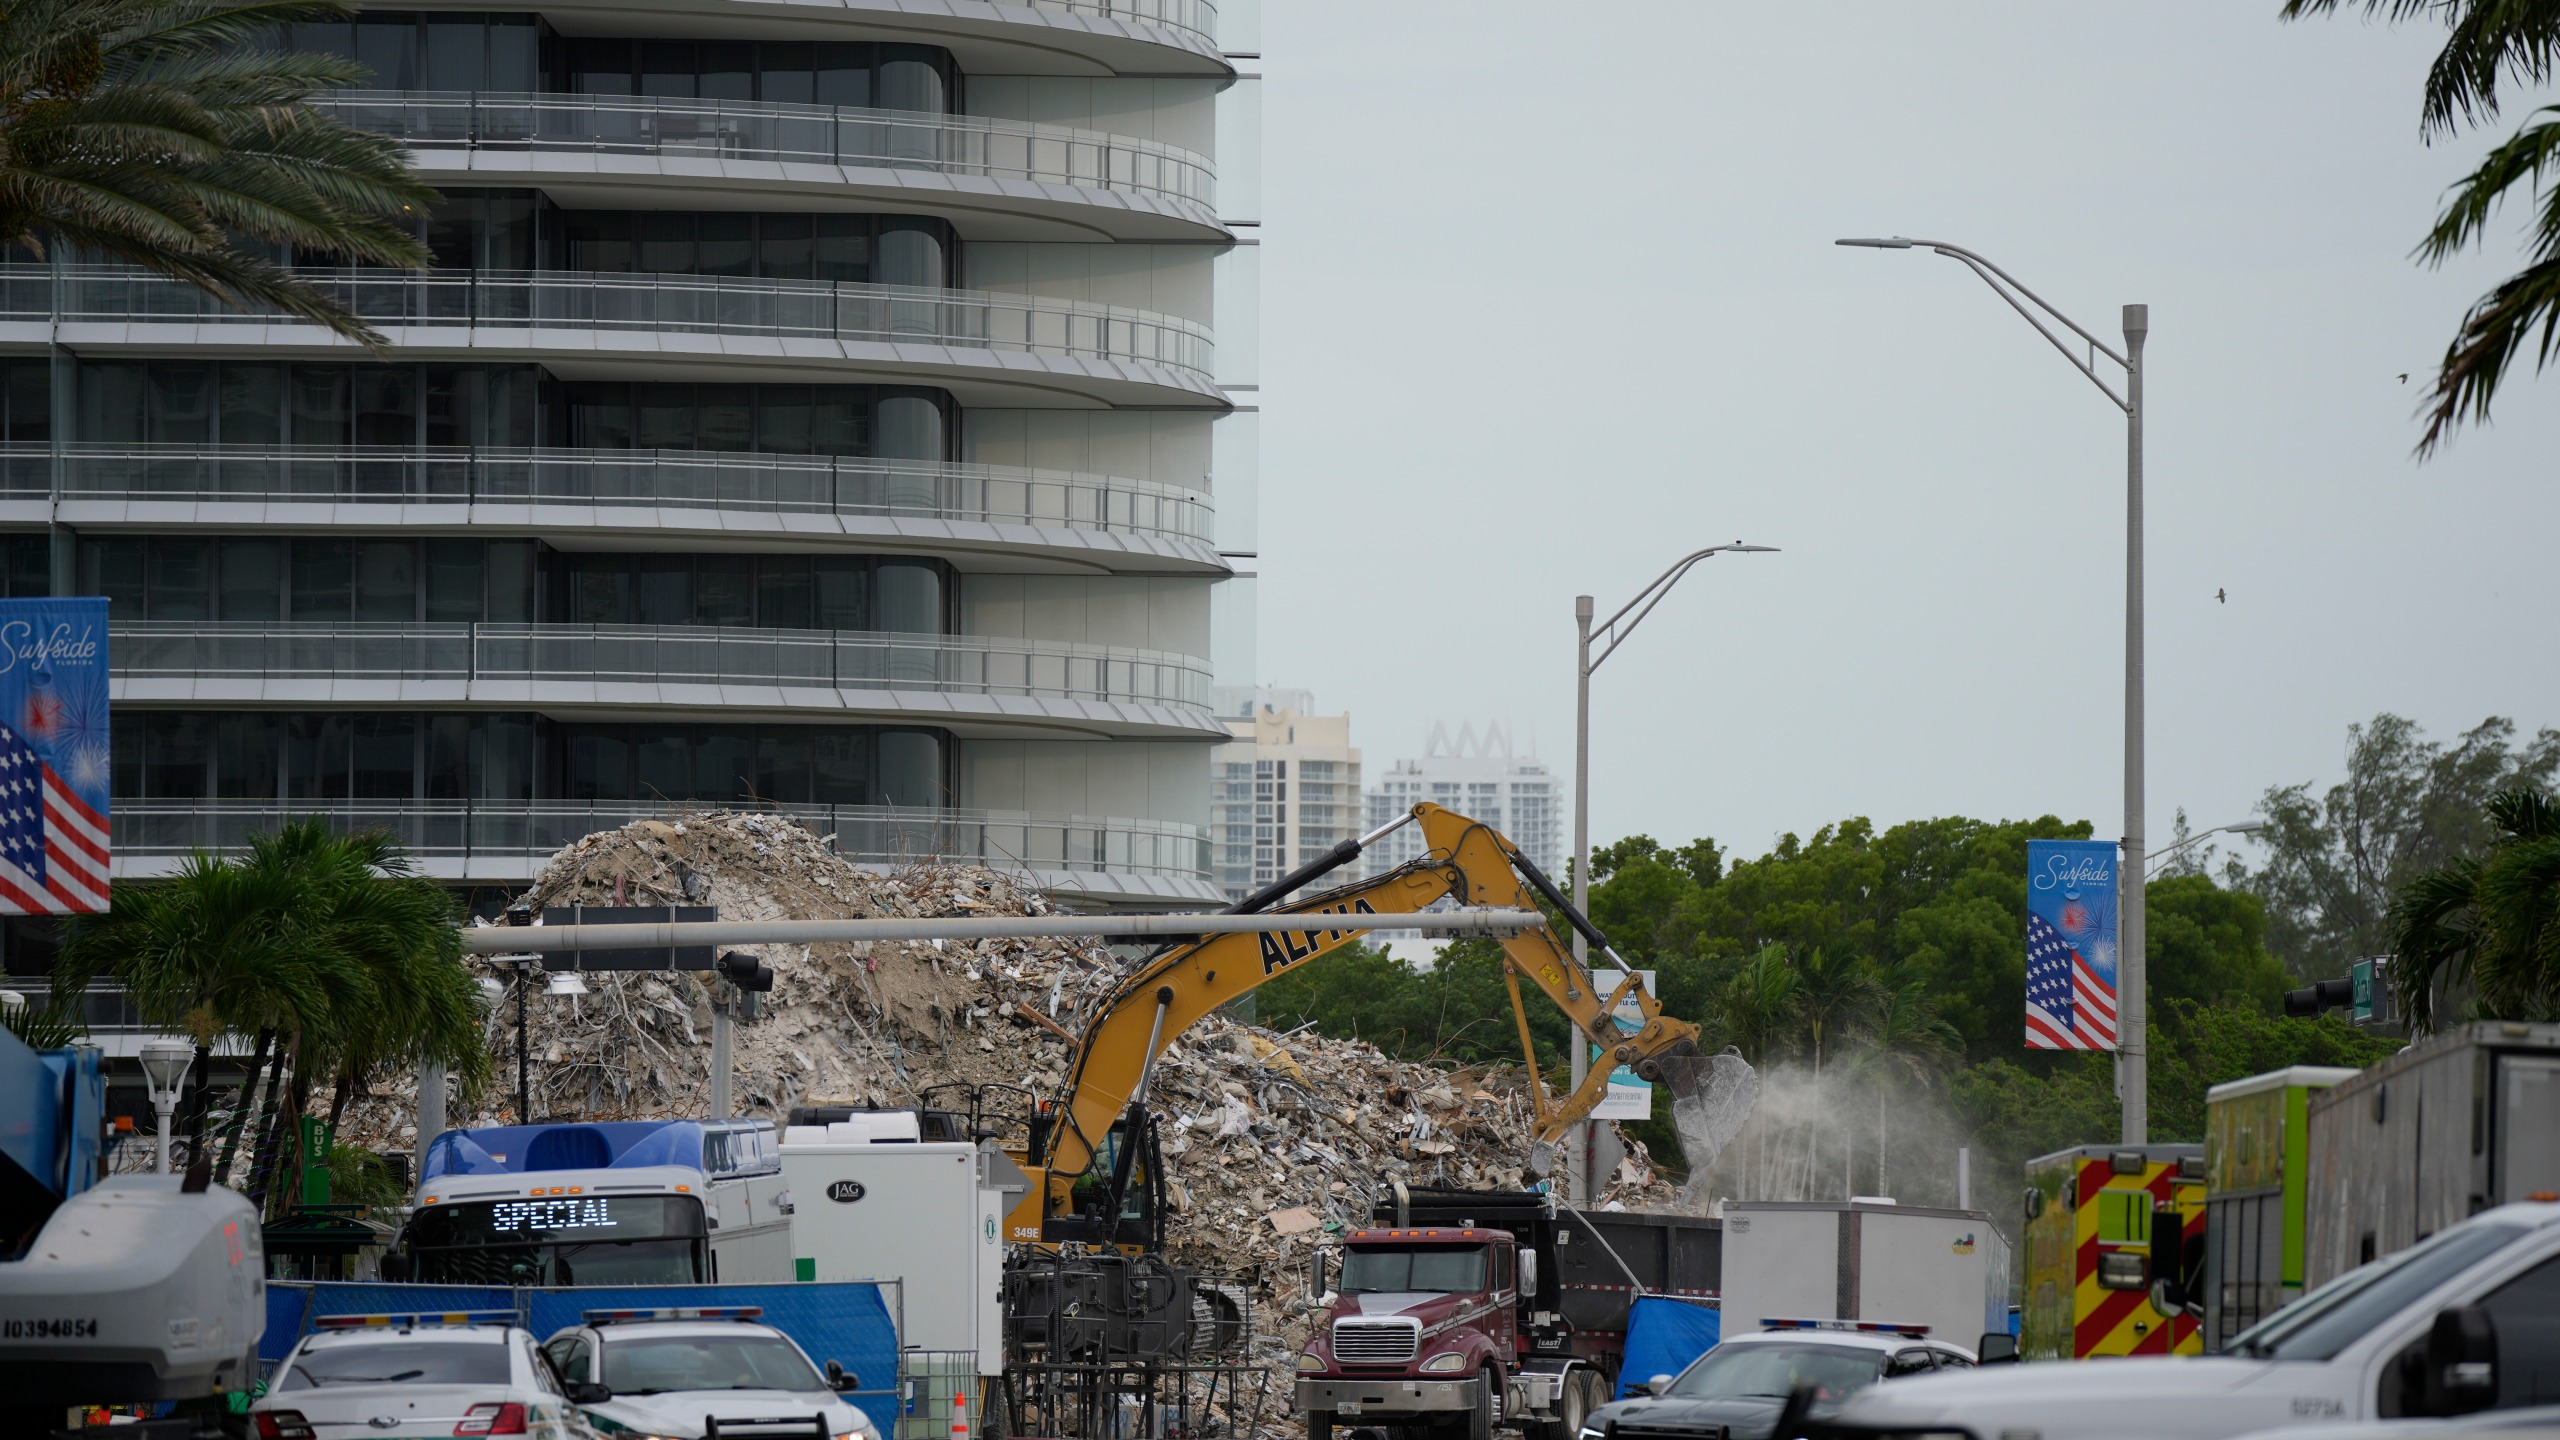 In this July 12, 2021 file photo, an excavator removes the rubble of the demolished section of the Champlain Towers South building, as recovery work continues at the site of the partially collapsed condo building, in Surfside, Fla. Another victim has been identified in the collapse of a 12-story Florida condominium. The Miami-Dade Police Department said in a news release Saturday, July 17, that Theresa Velasquez, 36, was a confirmed fatality in the June 24 collapse of the Champlain Towers South condo. (AP Photo/Rebecca Blackwell, File)